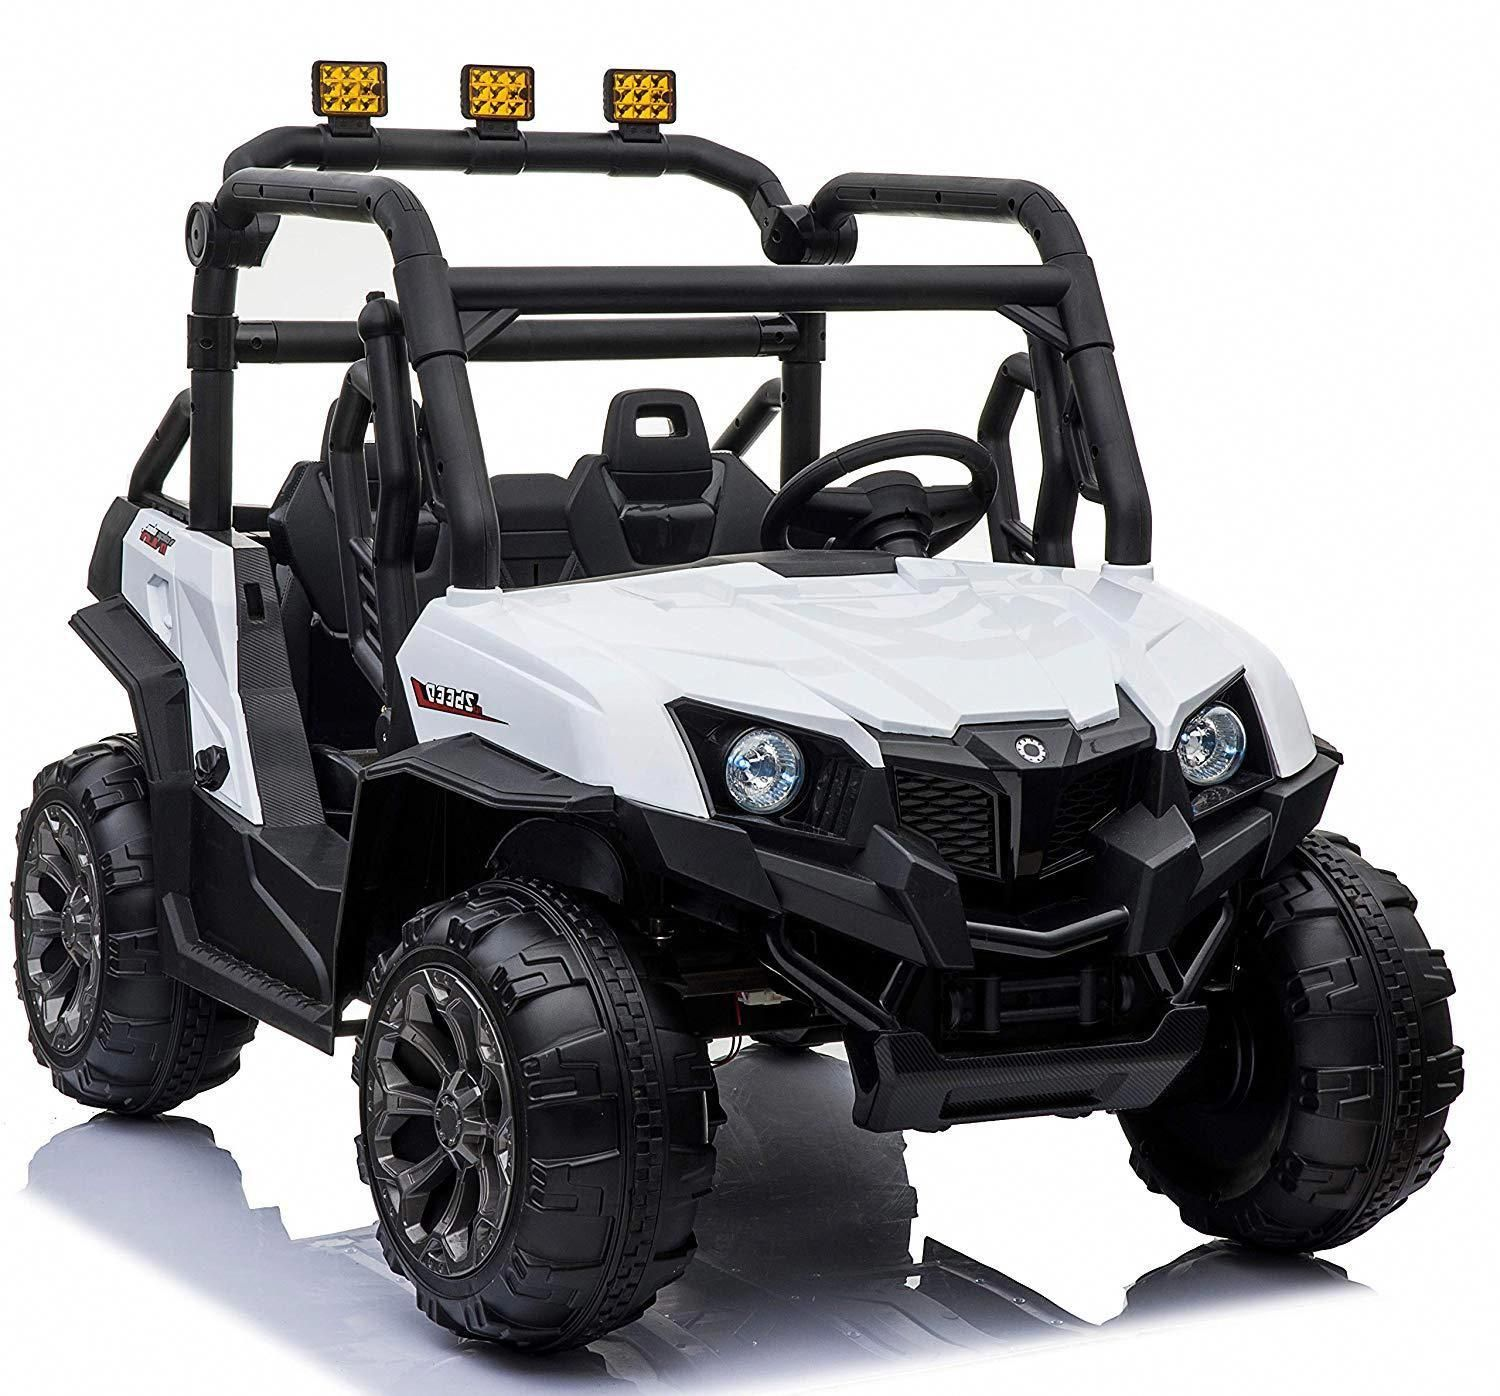 Two Seater 4 Wheel Drive Buggy Toy Electric Car 12v Battery 8988